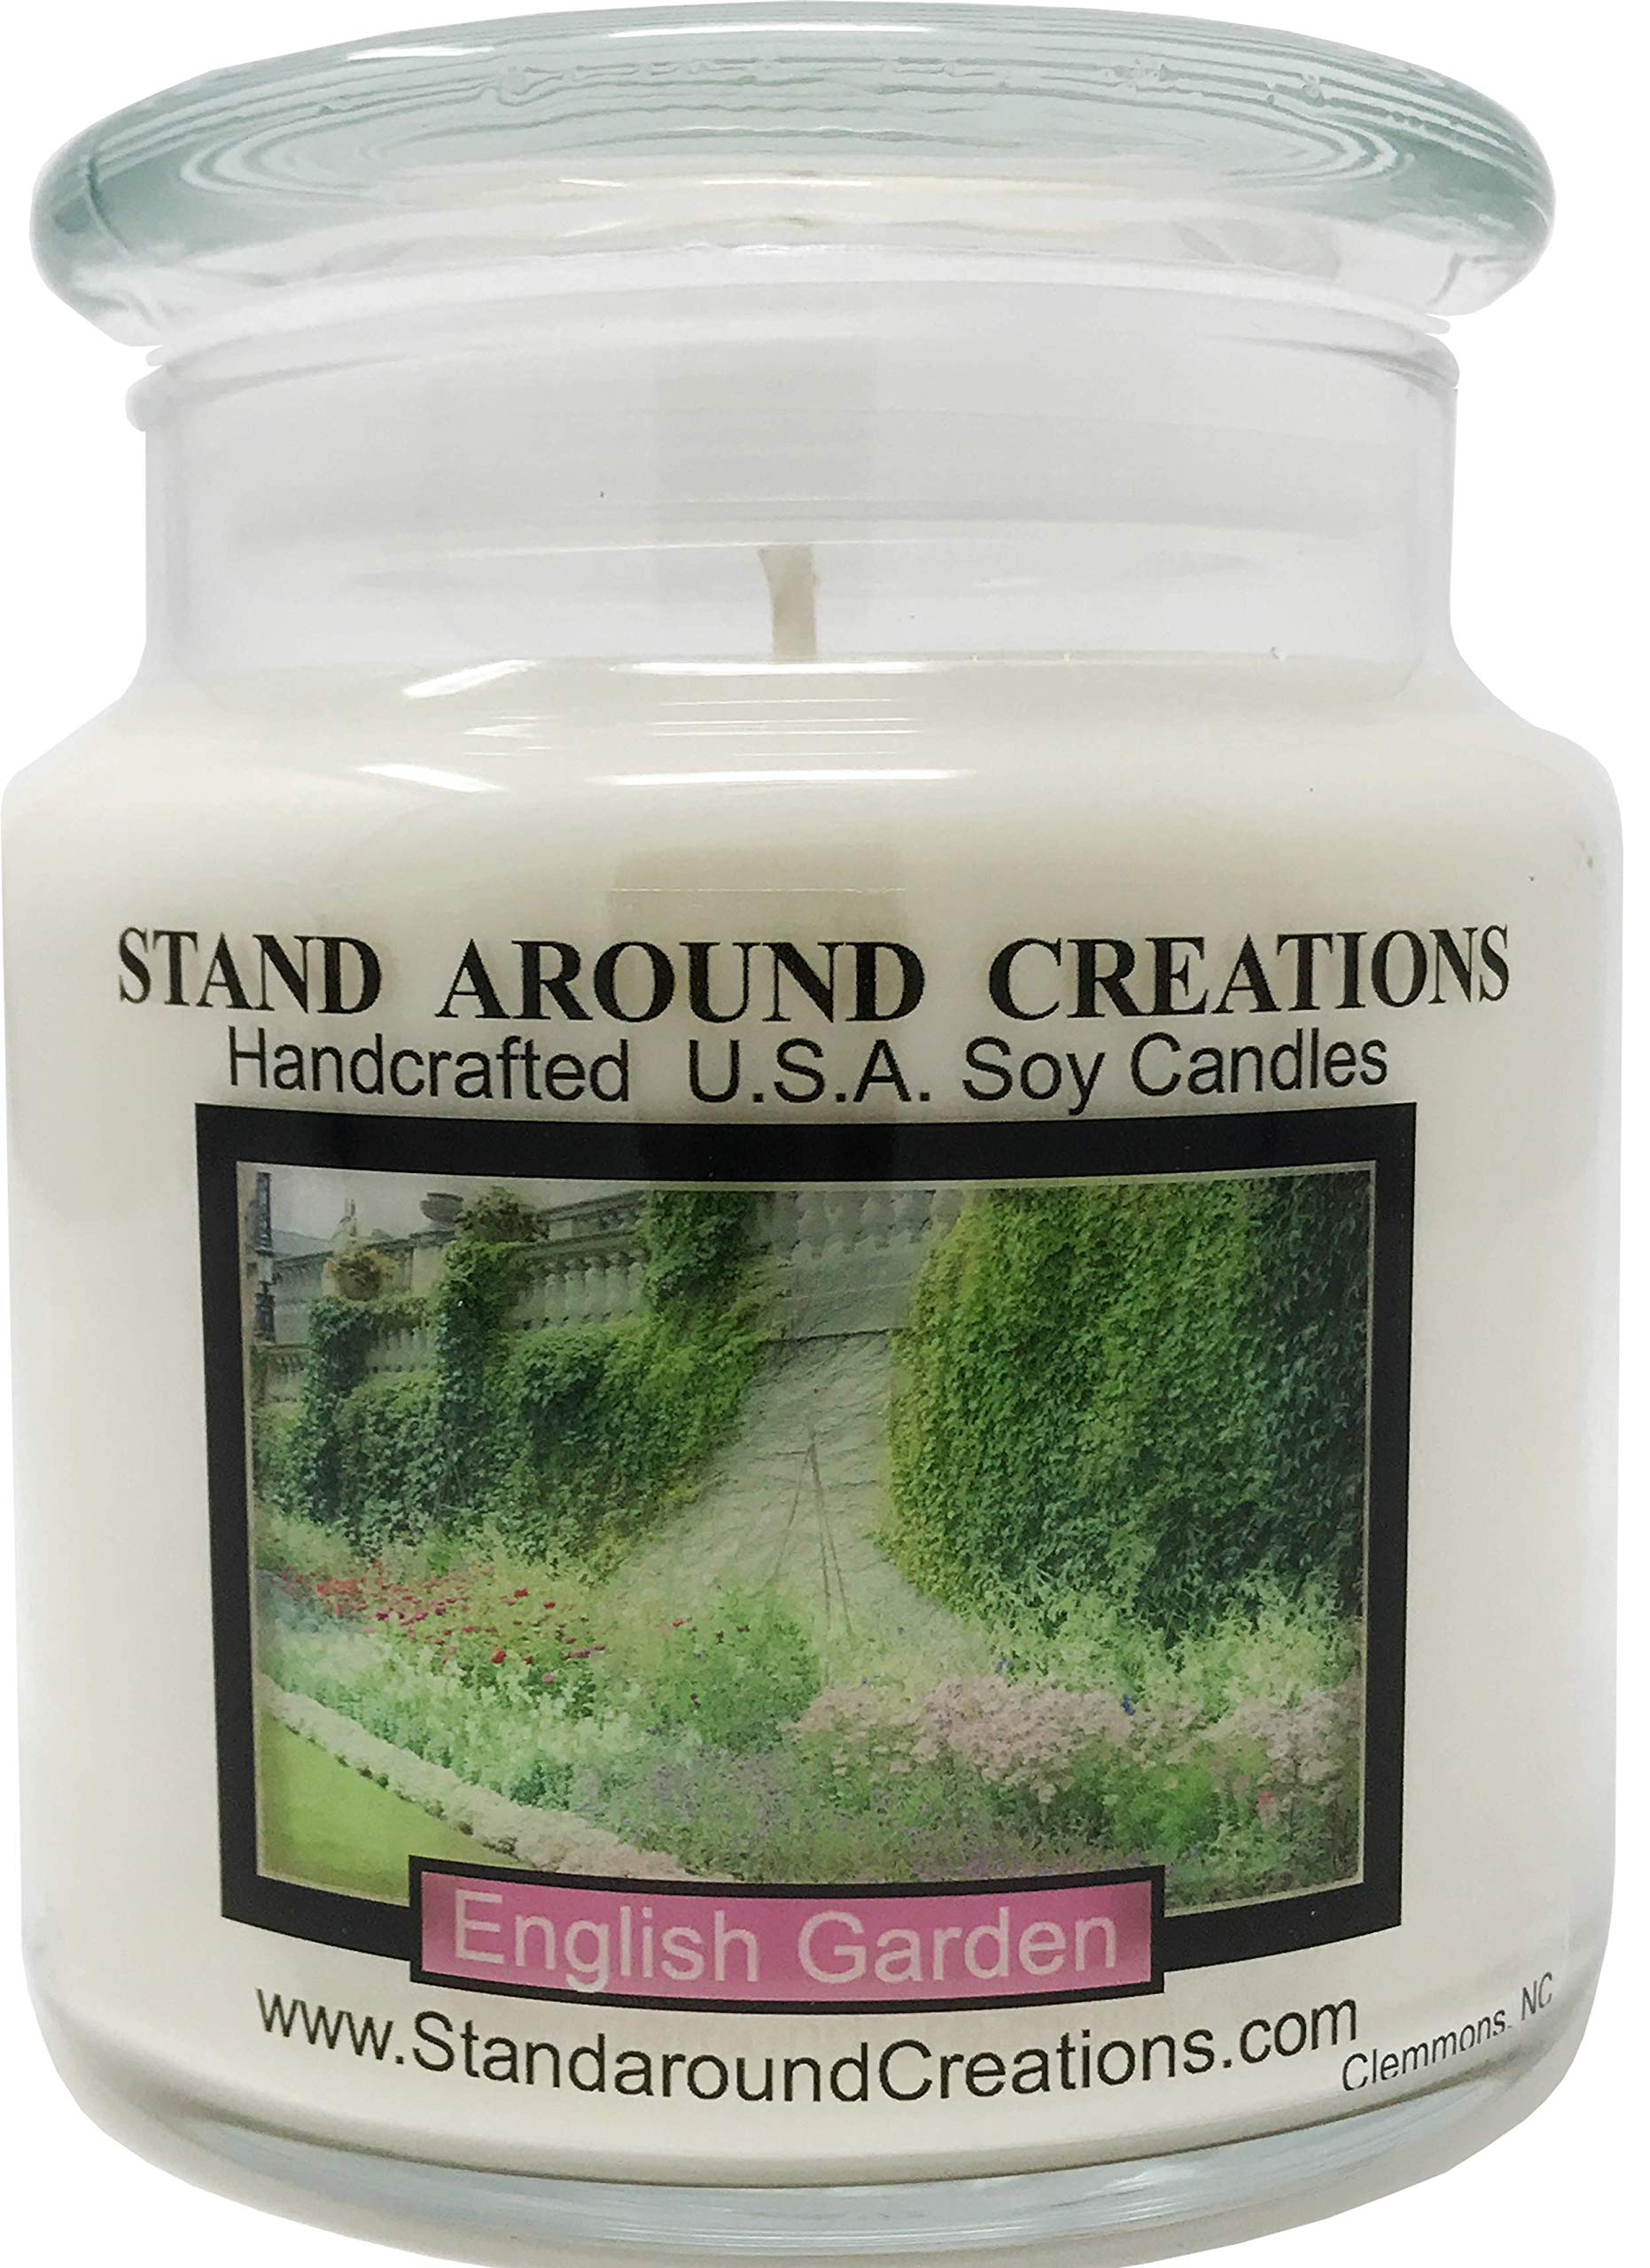 Premium 100% Soy Apothecary Candle - 16oz. - English Garden - Notes of lily, lilac, rose & hyacinth stand out in this must have fragrance for floral lovers. Made w/natural essential oils.